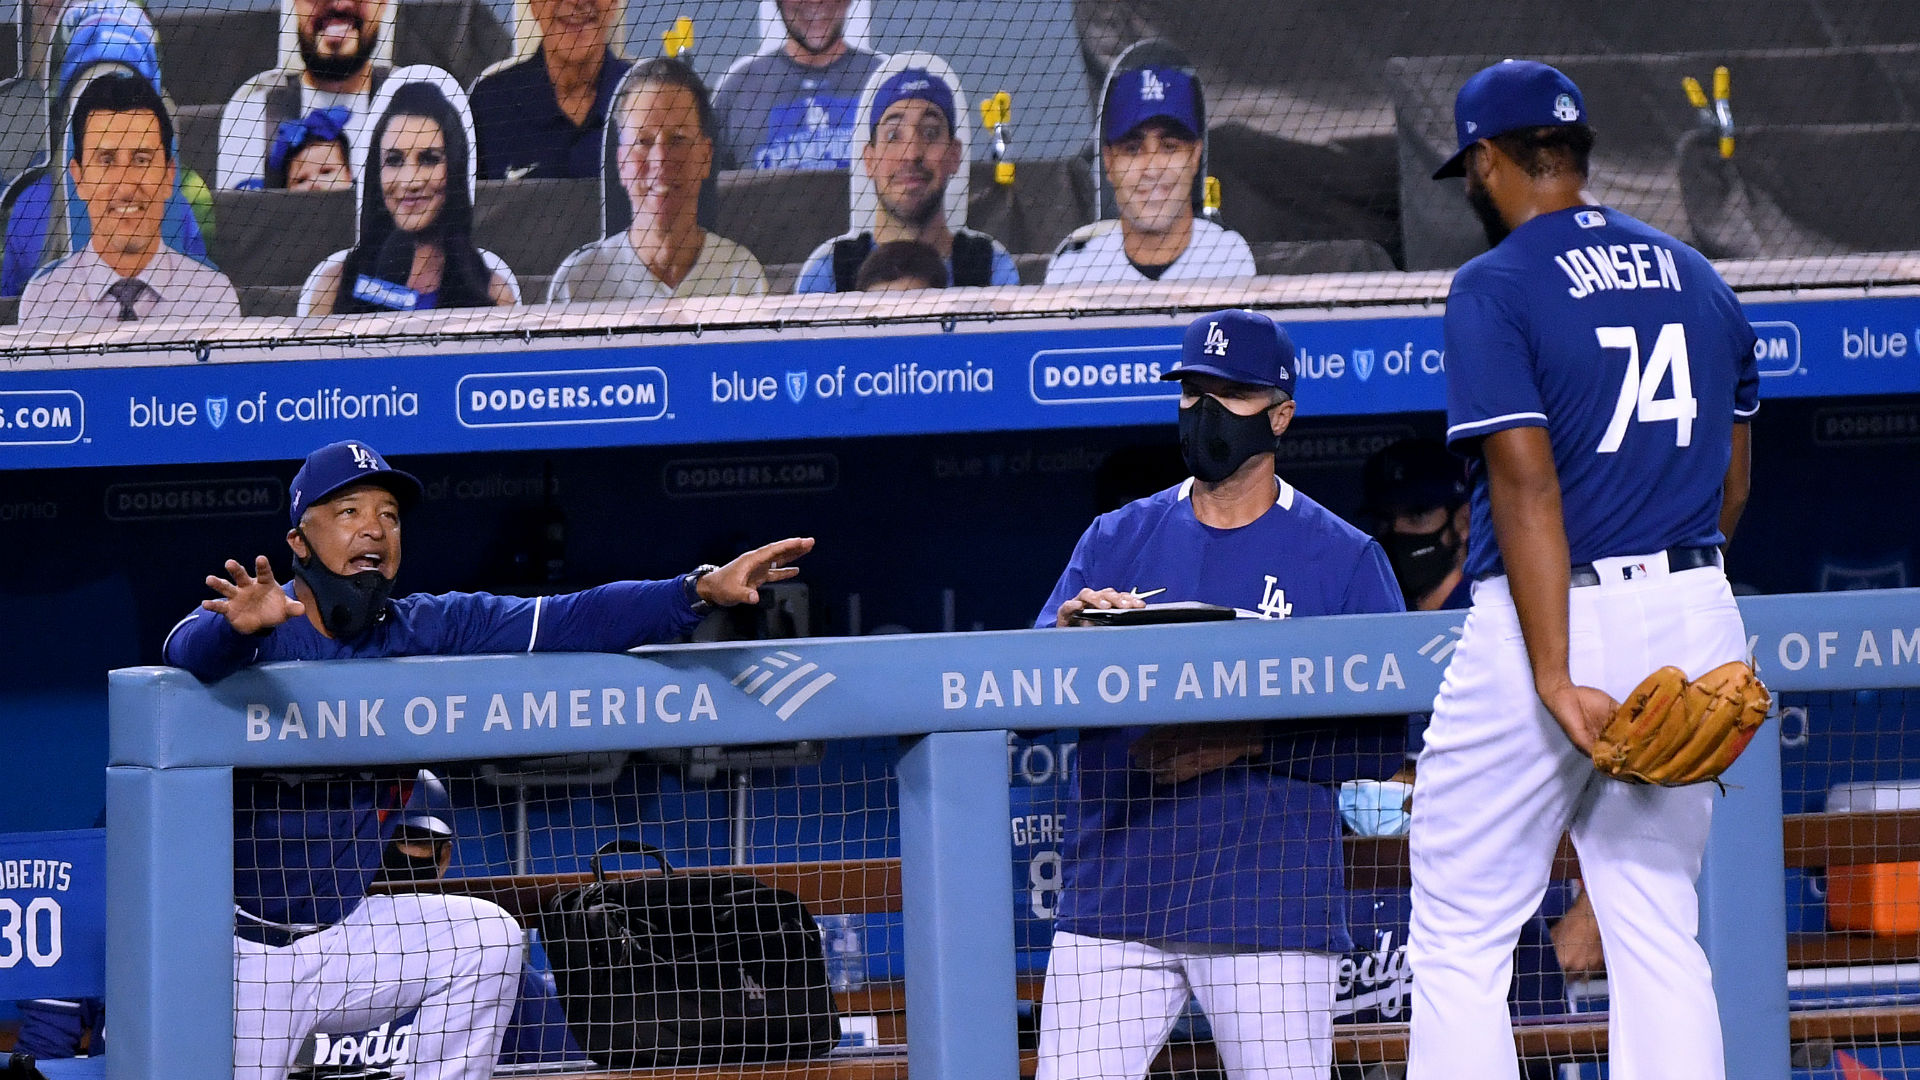 MLB coronavirus rules: No more spitting, finger-licking & other things players can't do during games